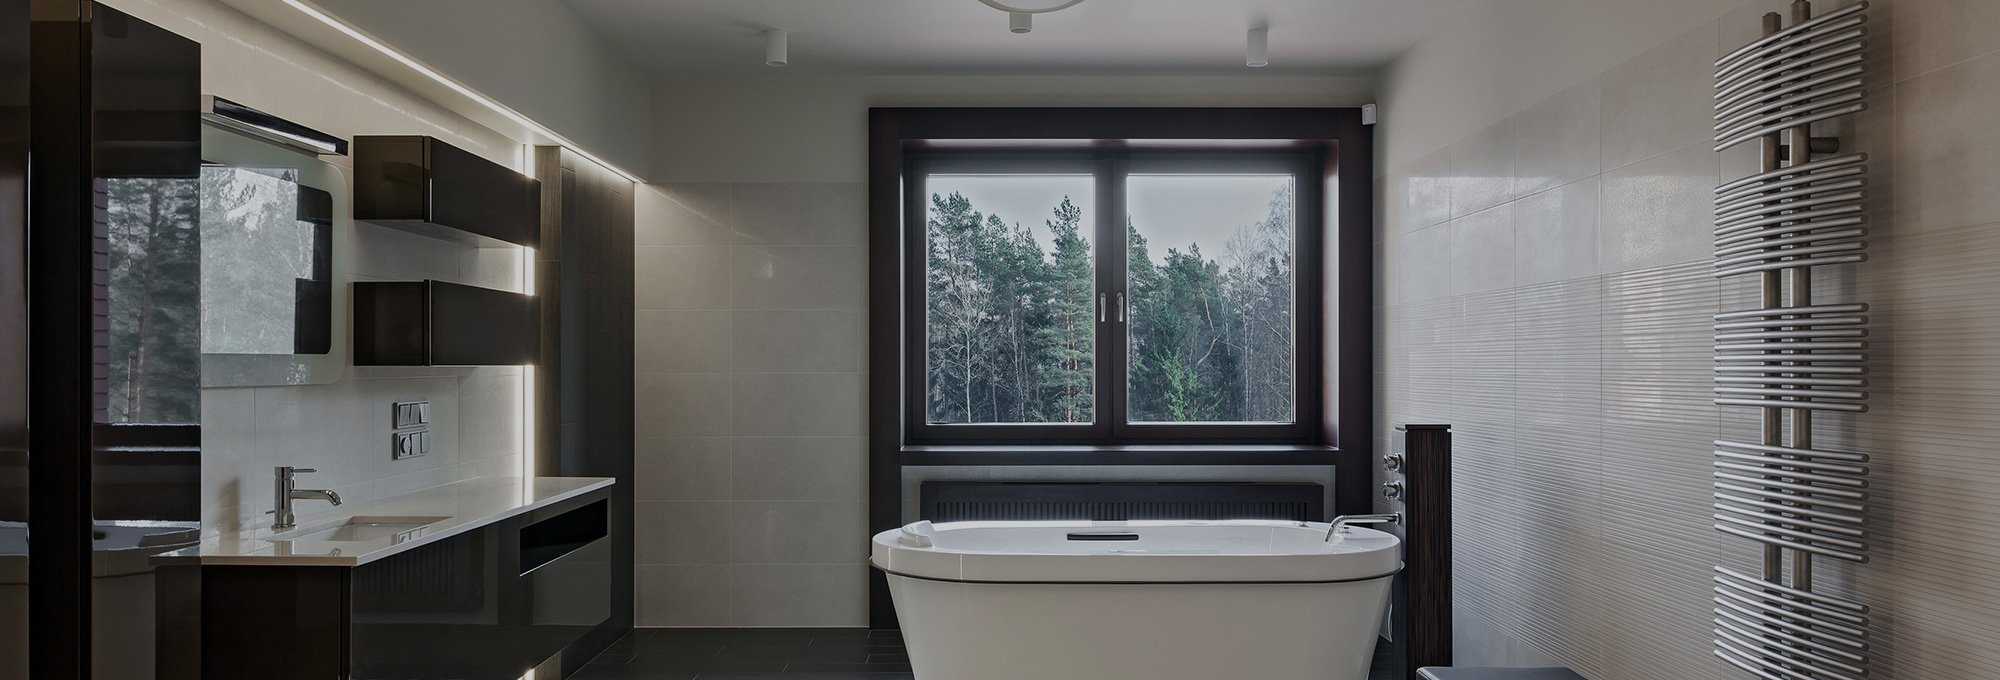 bathroom with glass and window upgrade